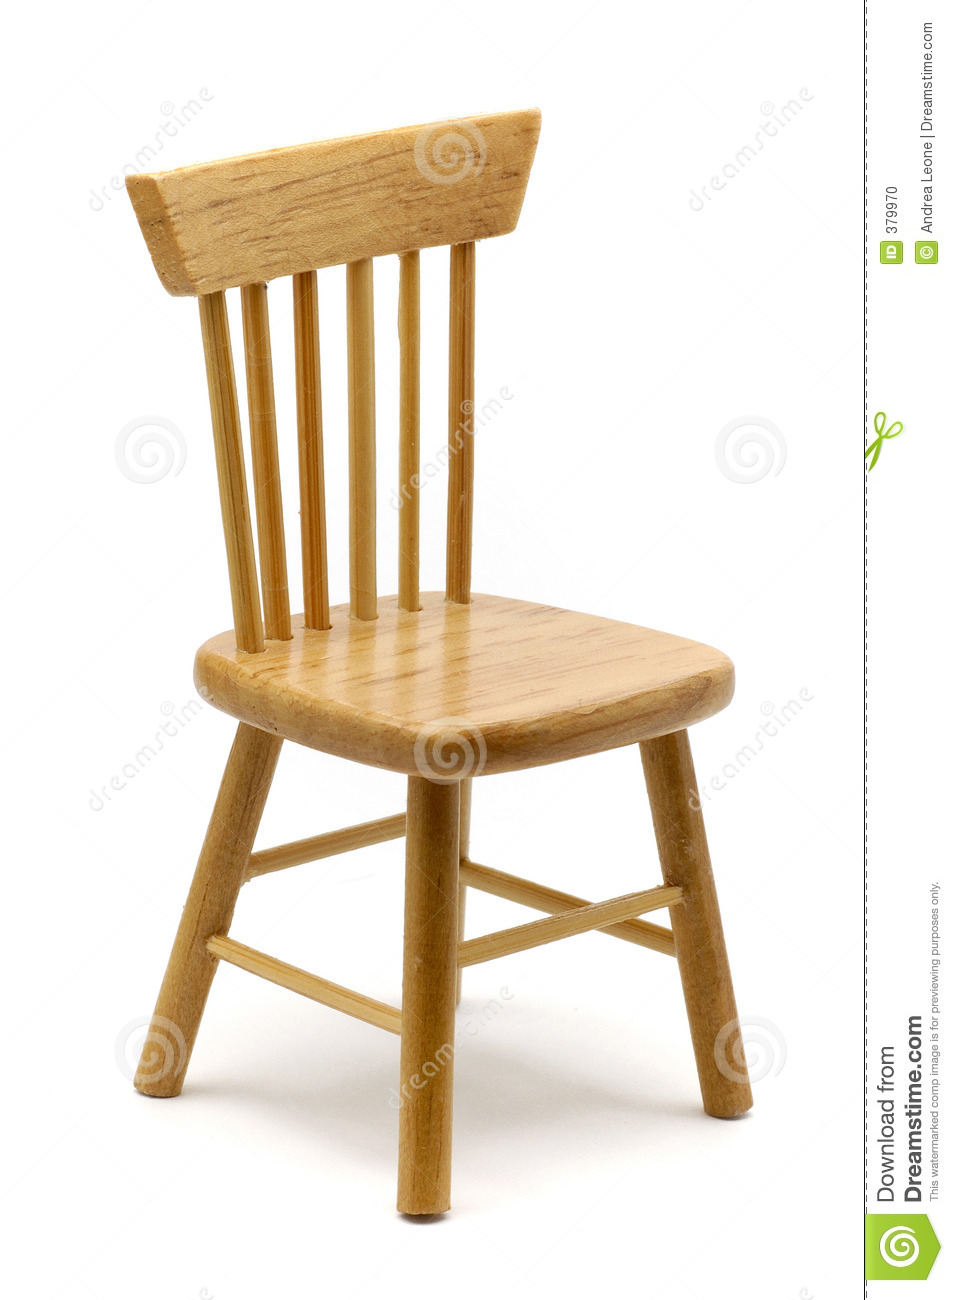 Wooden Chair Stock Photo Image 379970